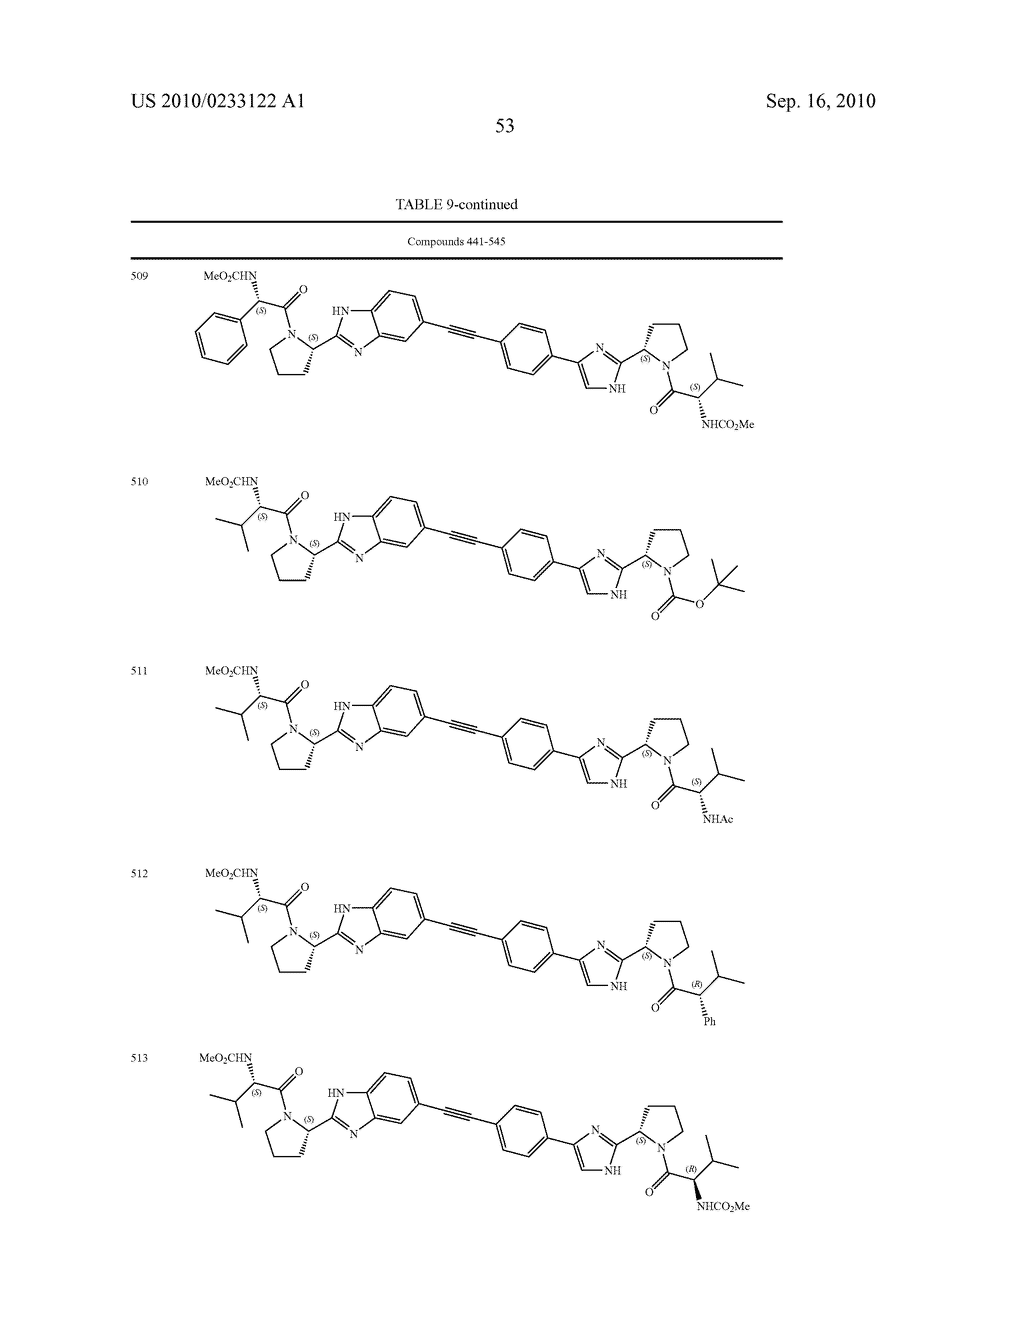 NOVEL BENZIMIDAZOLE DERIVATIVES - diagram, schematic, and image 54